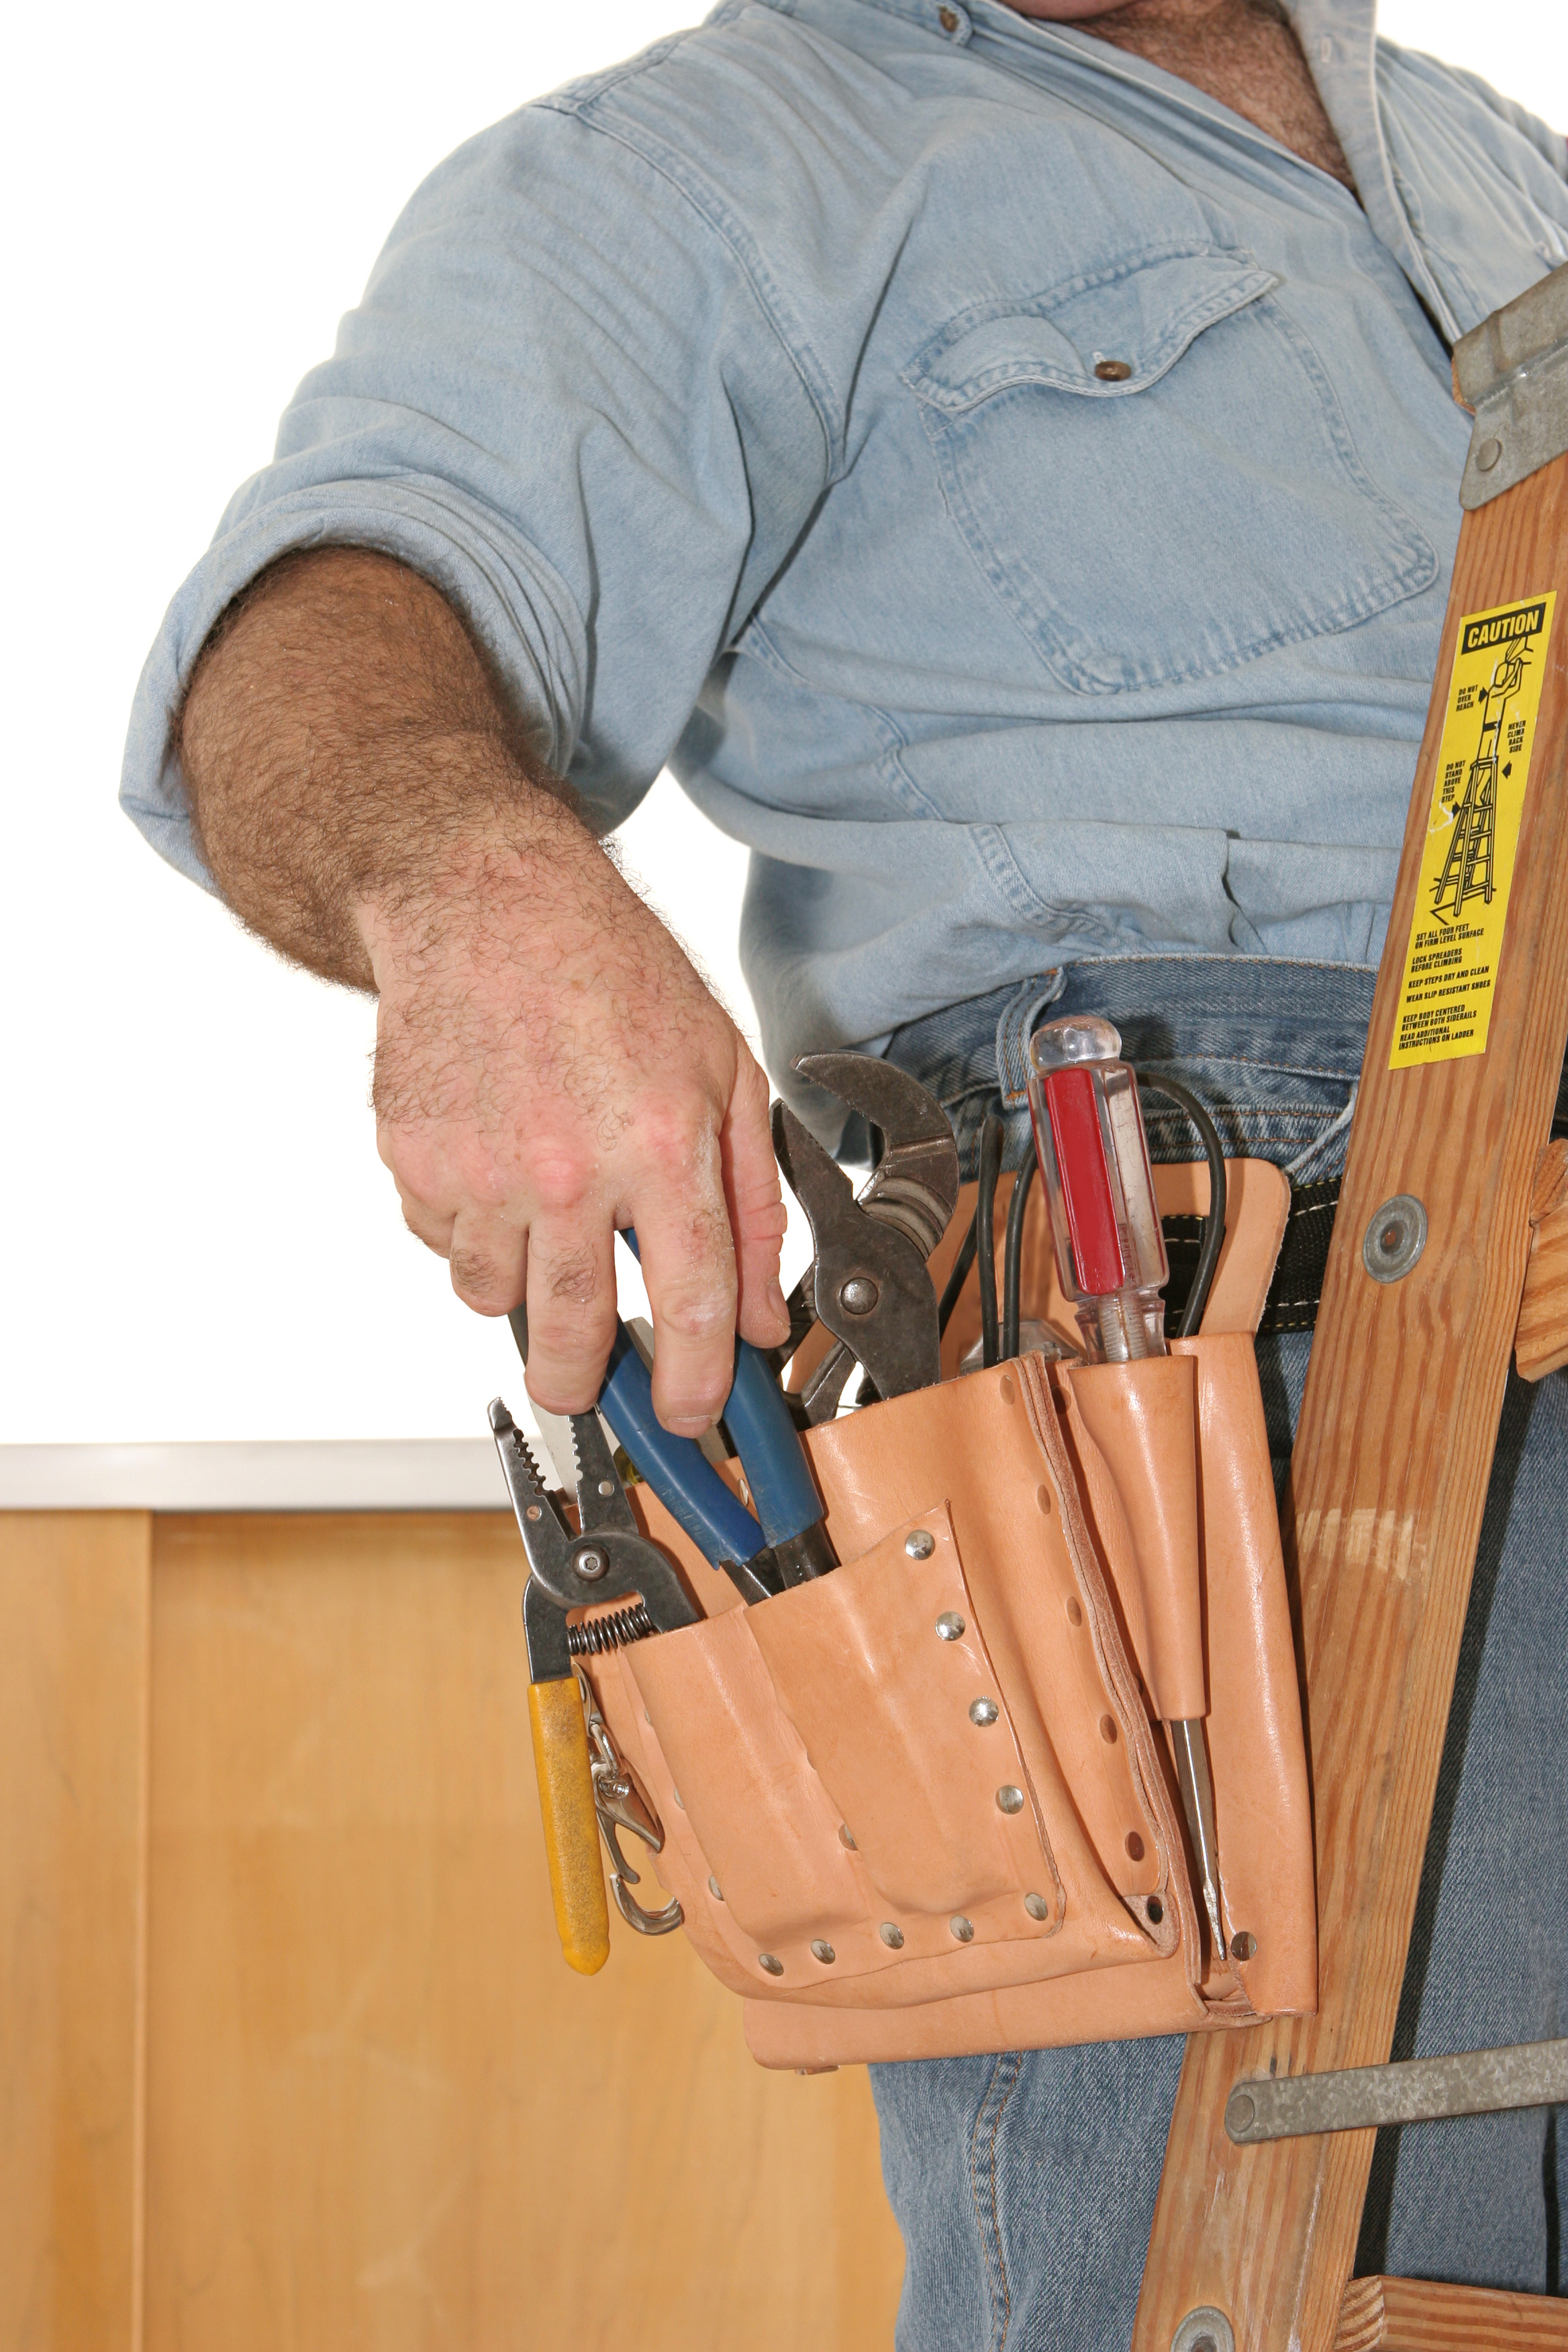 5 Common Tool Pouch Problems